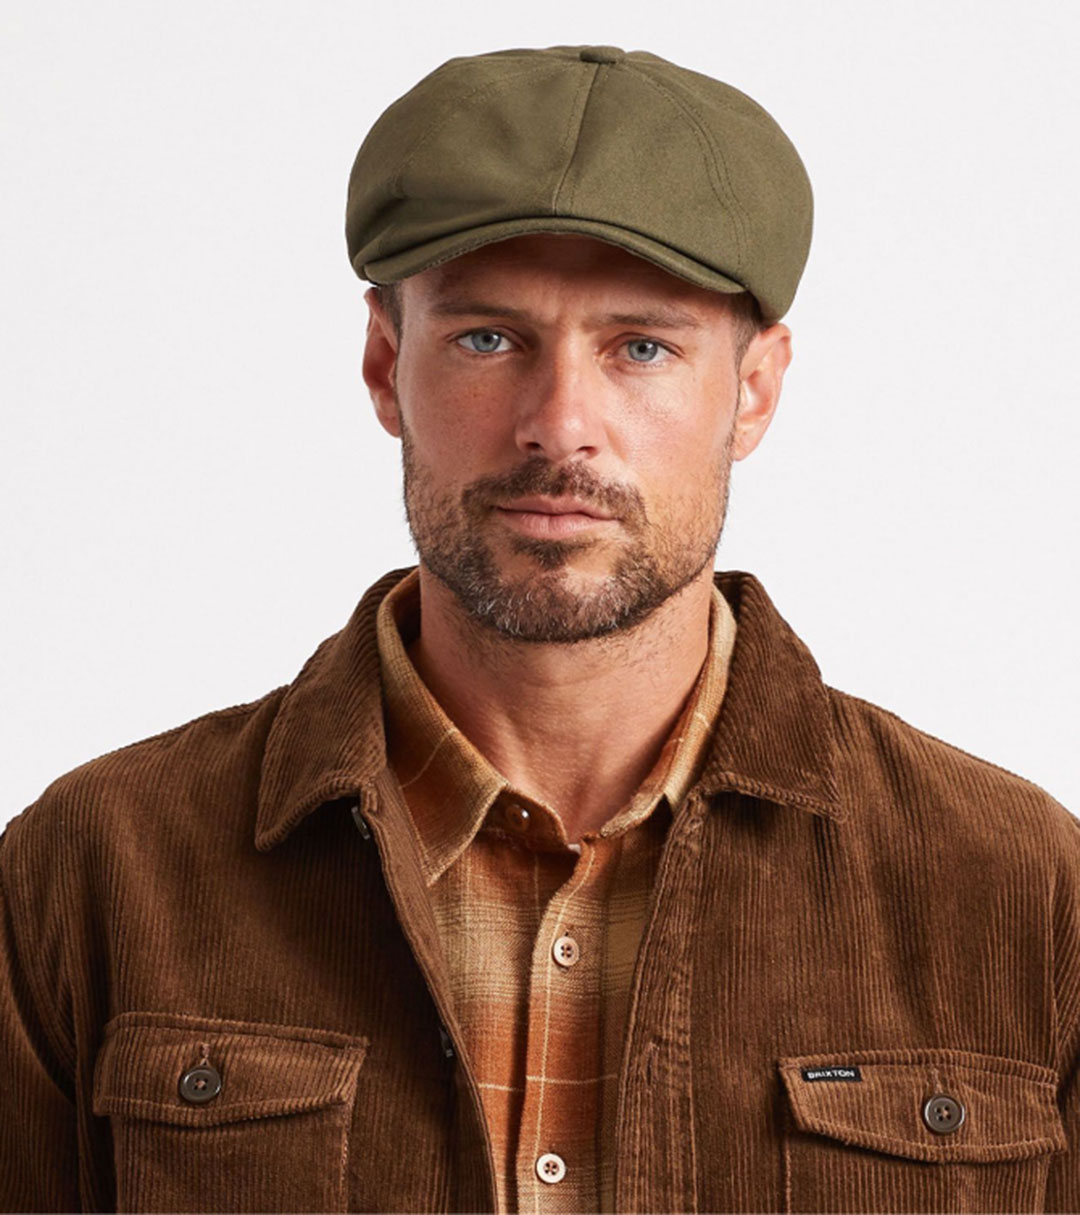 Men's Newsboy Caps